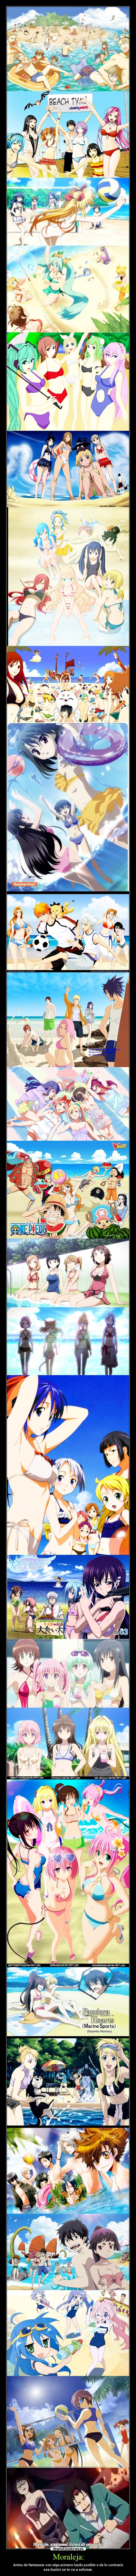 carteles anime verano imposible mas claro beach playa summer animes desmotivaciones